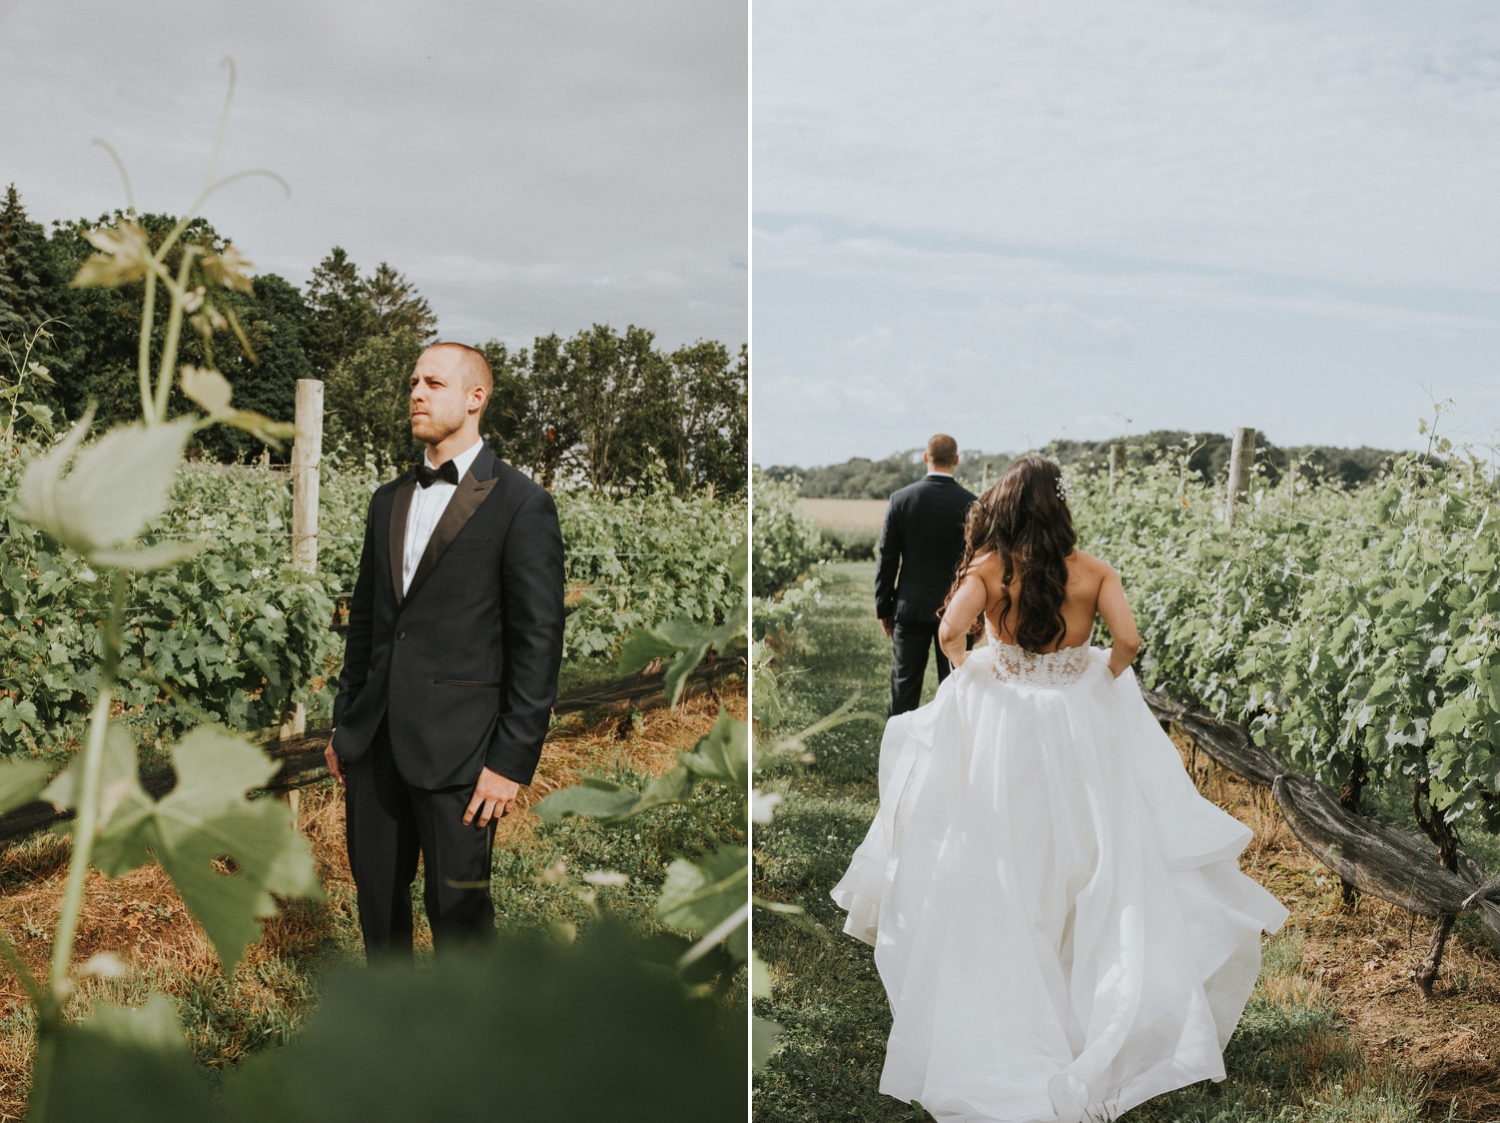 Hudson Valley Wedding Photographer, Hamptons Wedding Photographer, The Vineyards at Aquebogue, Long Island Wedding Photographer, New York Wedding Photographer, Wedding Invitations, First Look